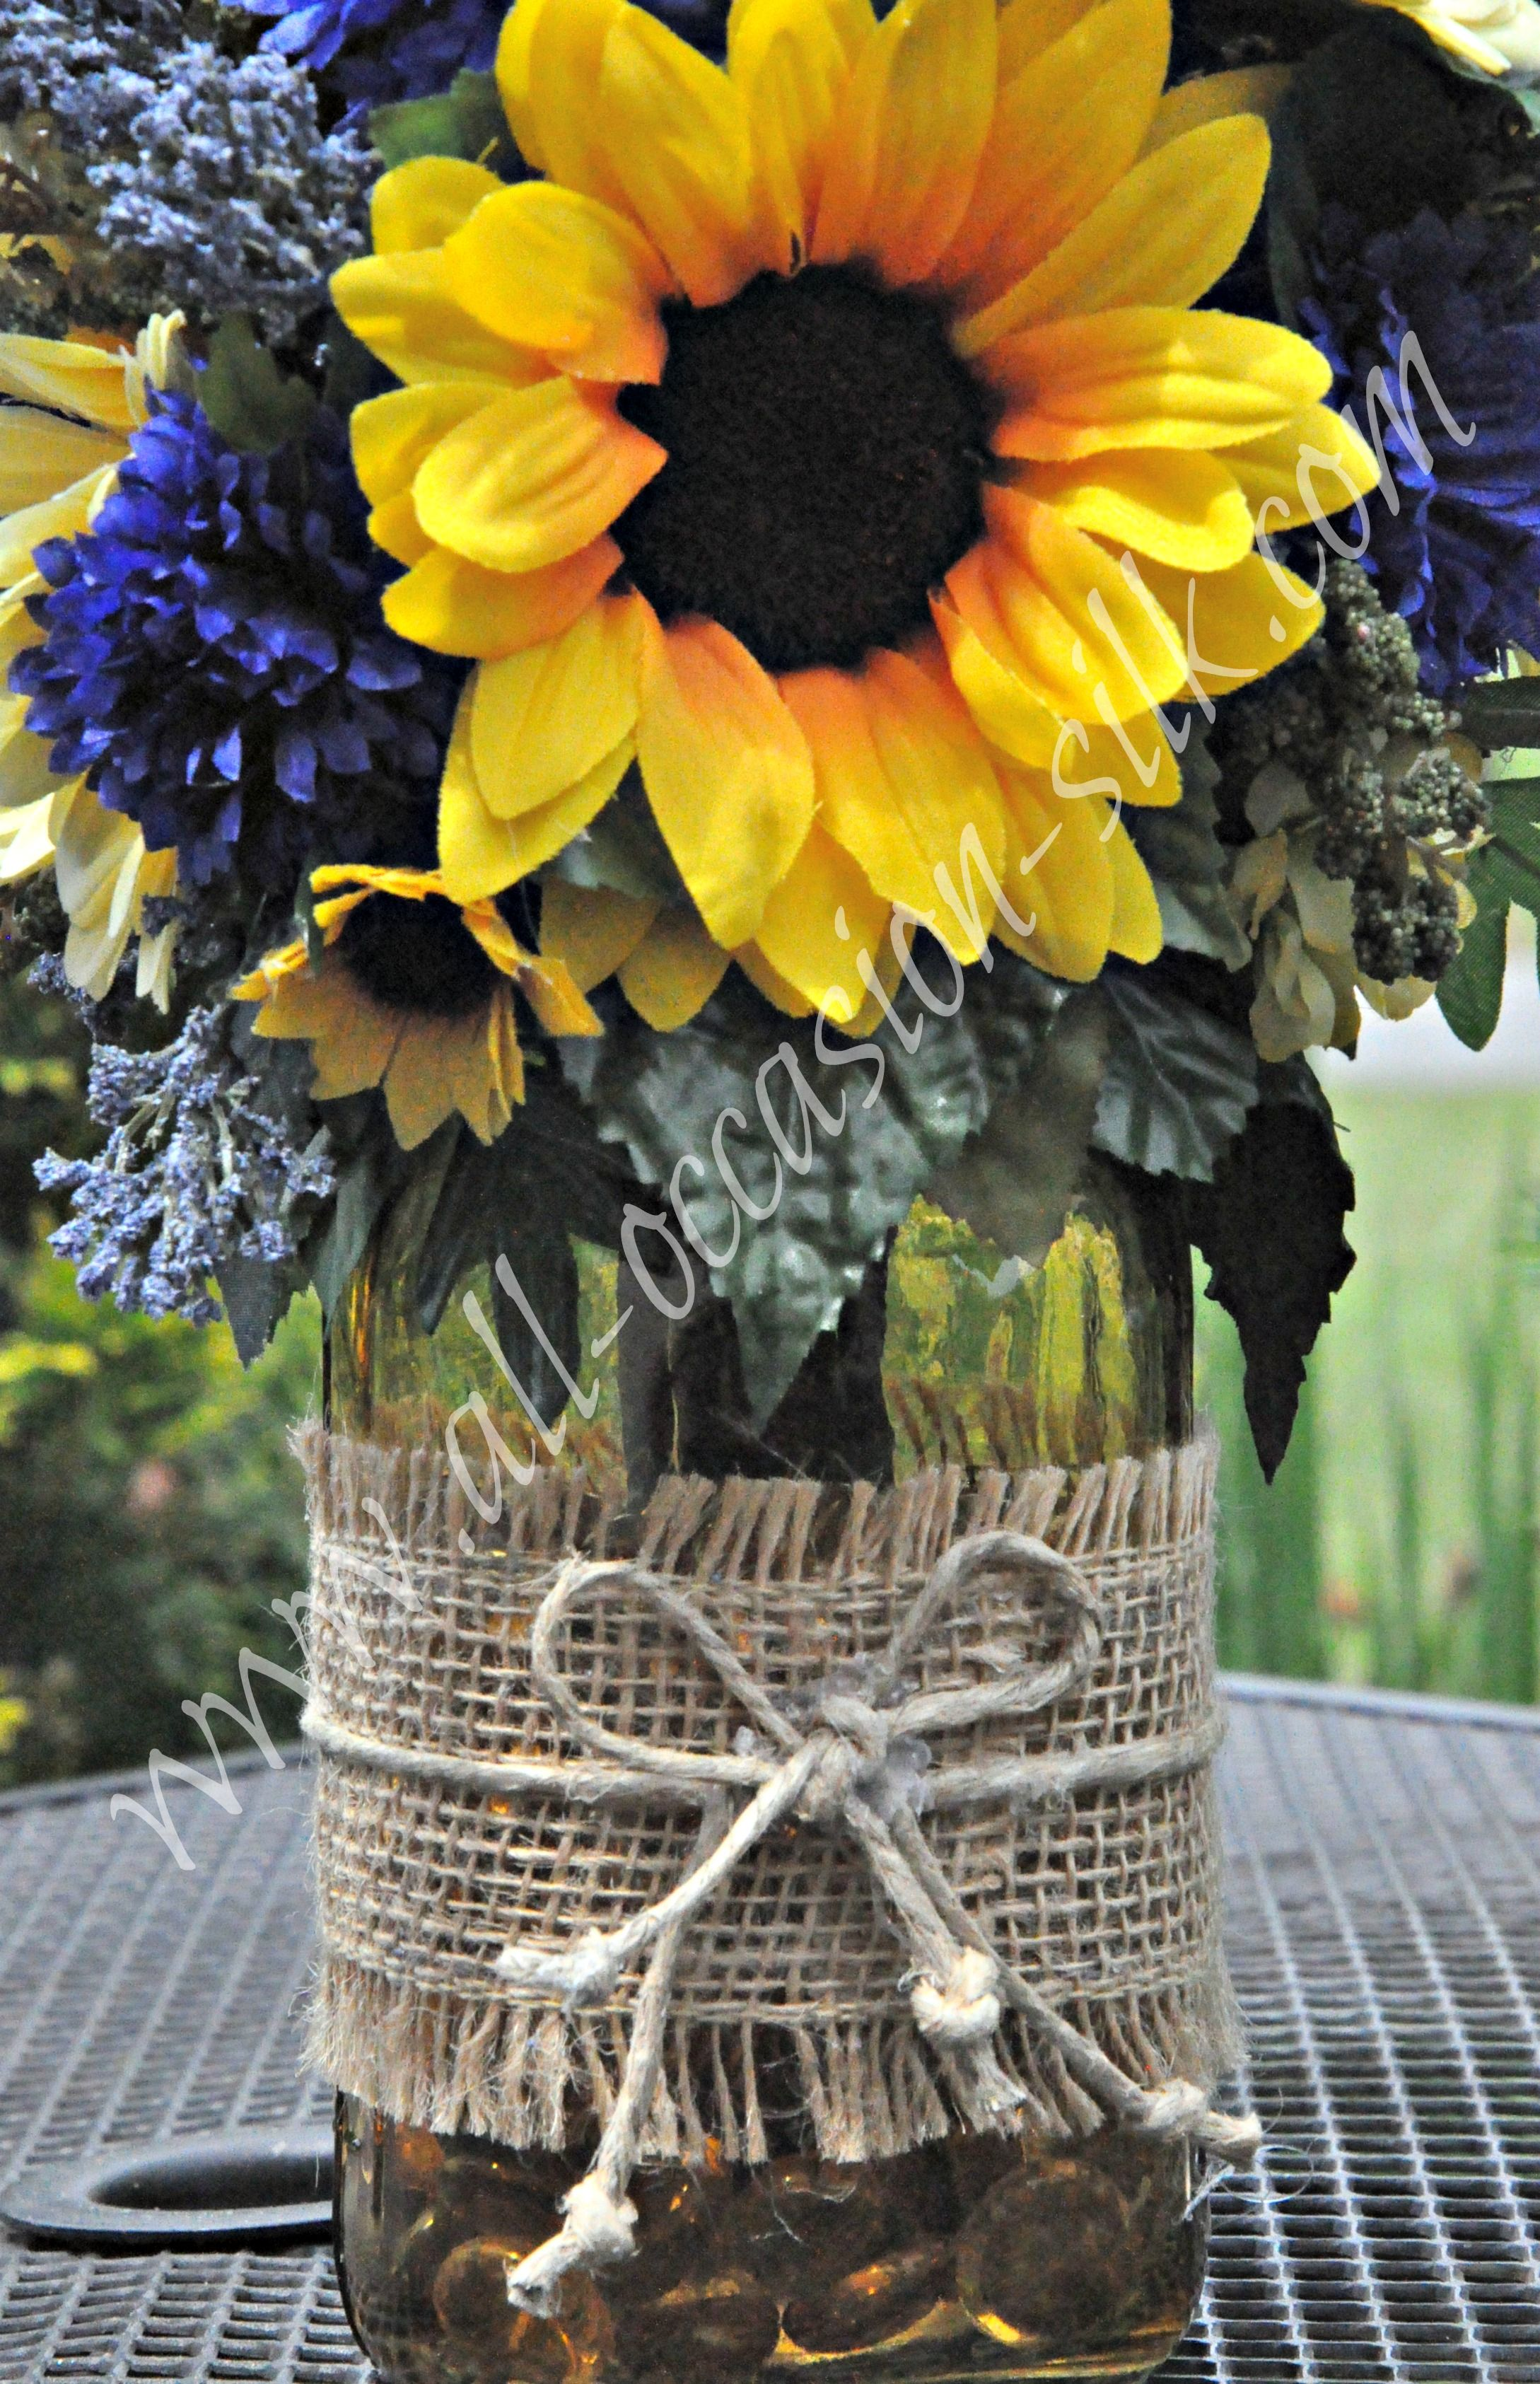 pictures of wedding centerpieces using mason jars%0A Rusticstyle centerpiece featuring sunflowers  blue delphinium  blue pom  poms  and gerbera daisies in a yellowtinted mason jar tied with burlap and  twine